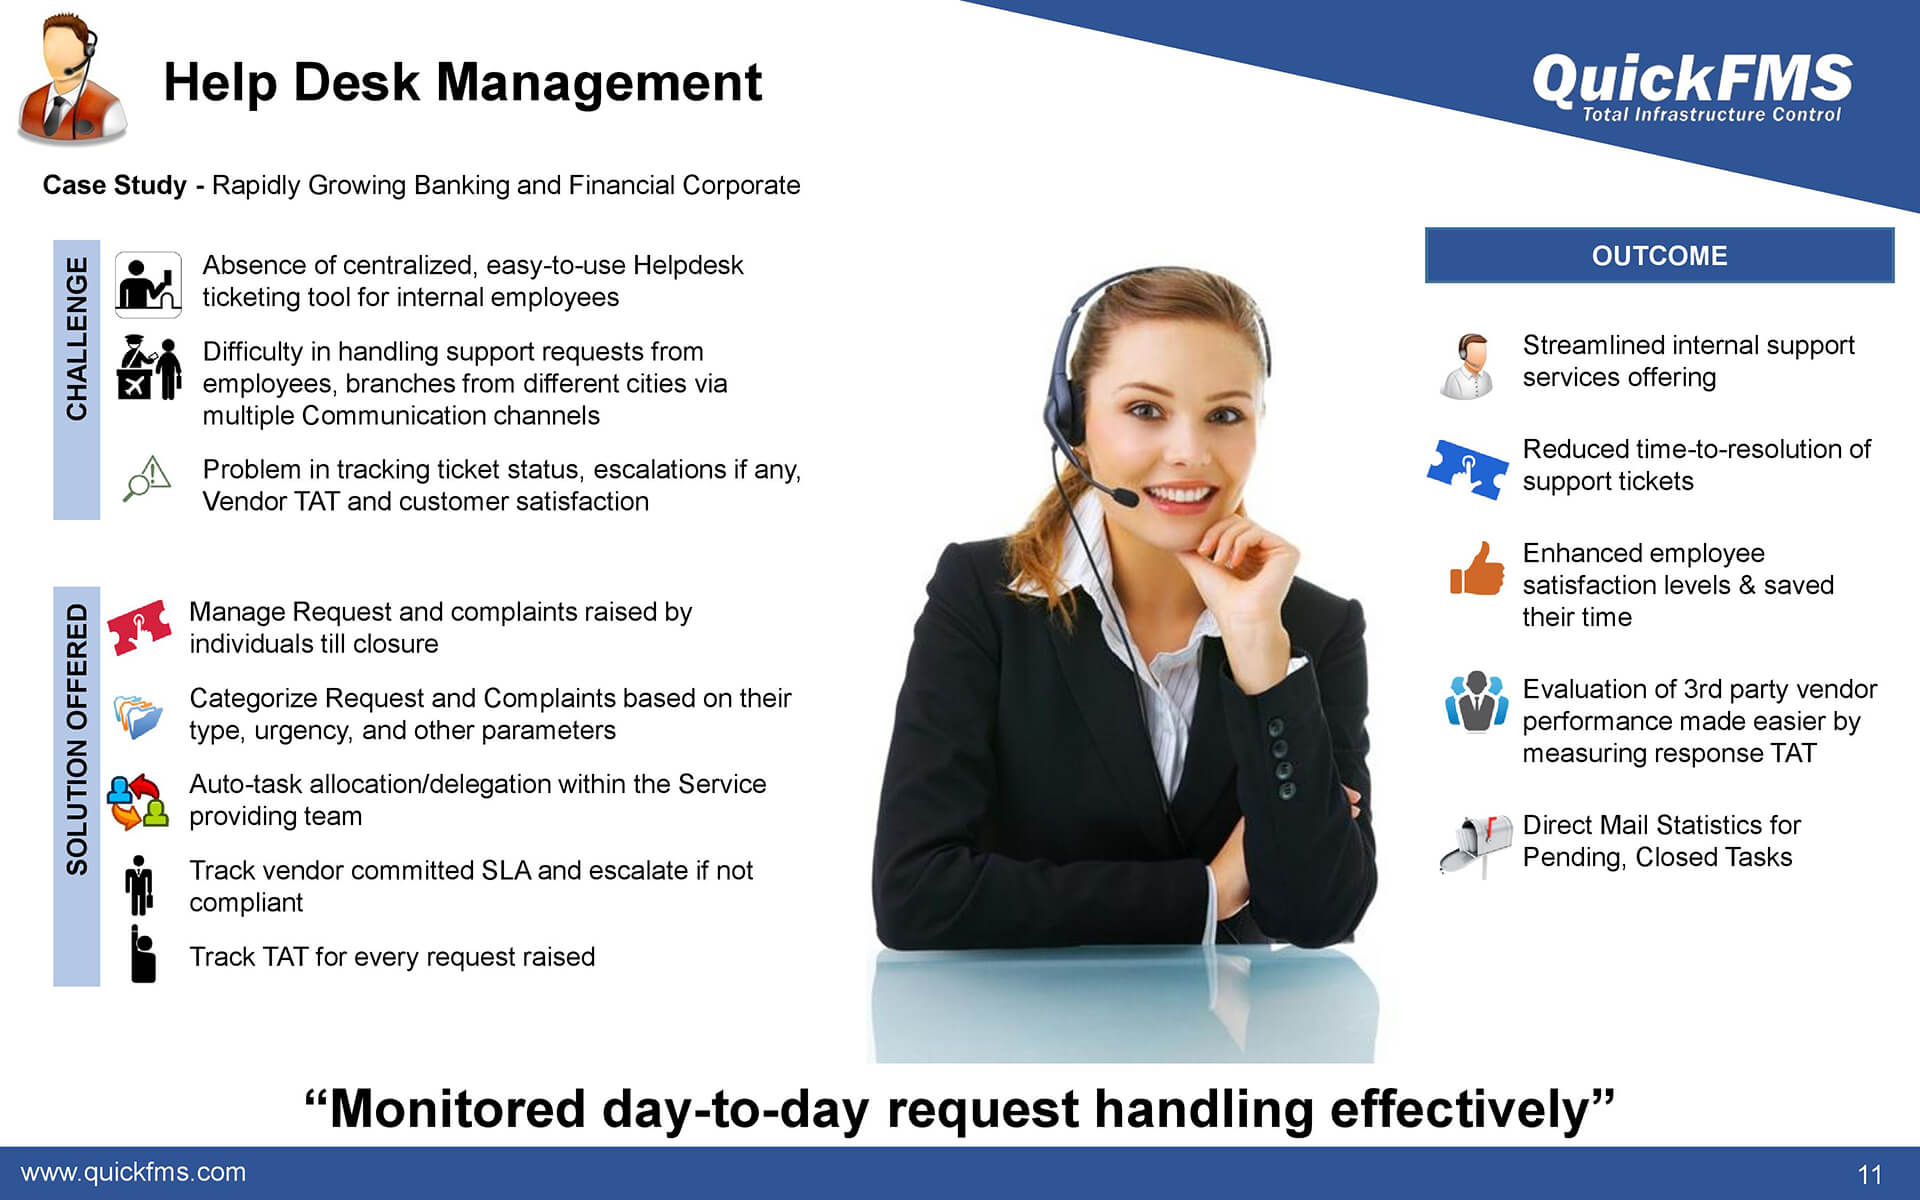 Overview presentation on Help Desk Management - QuickFMS